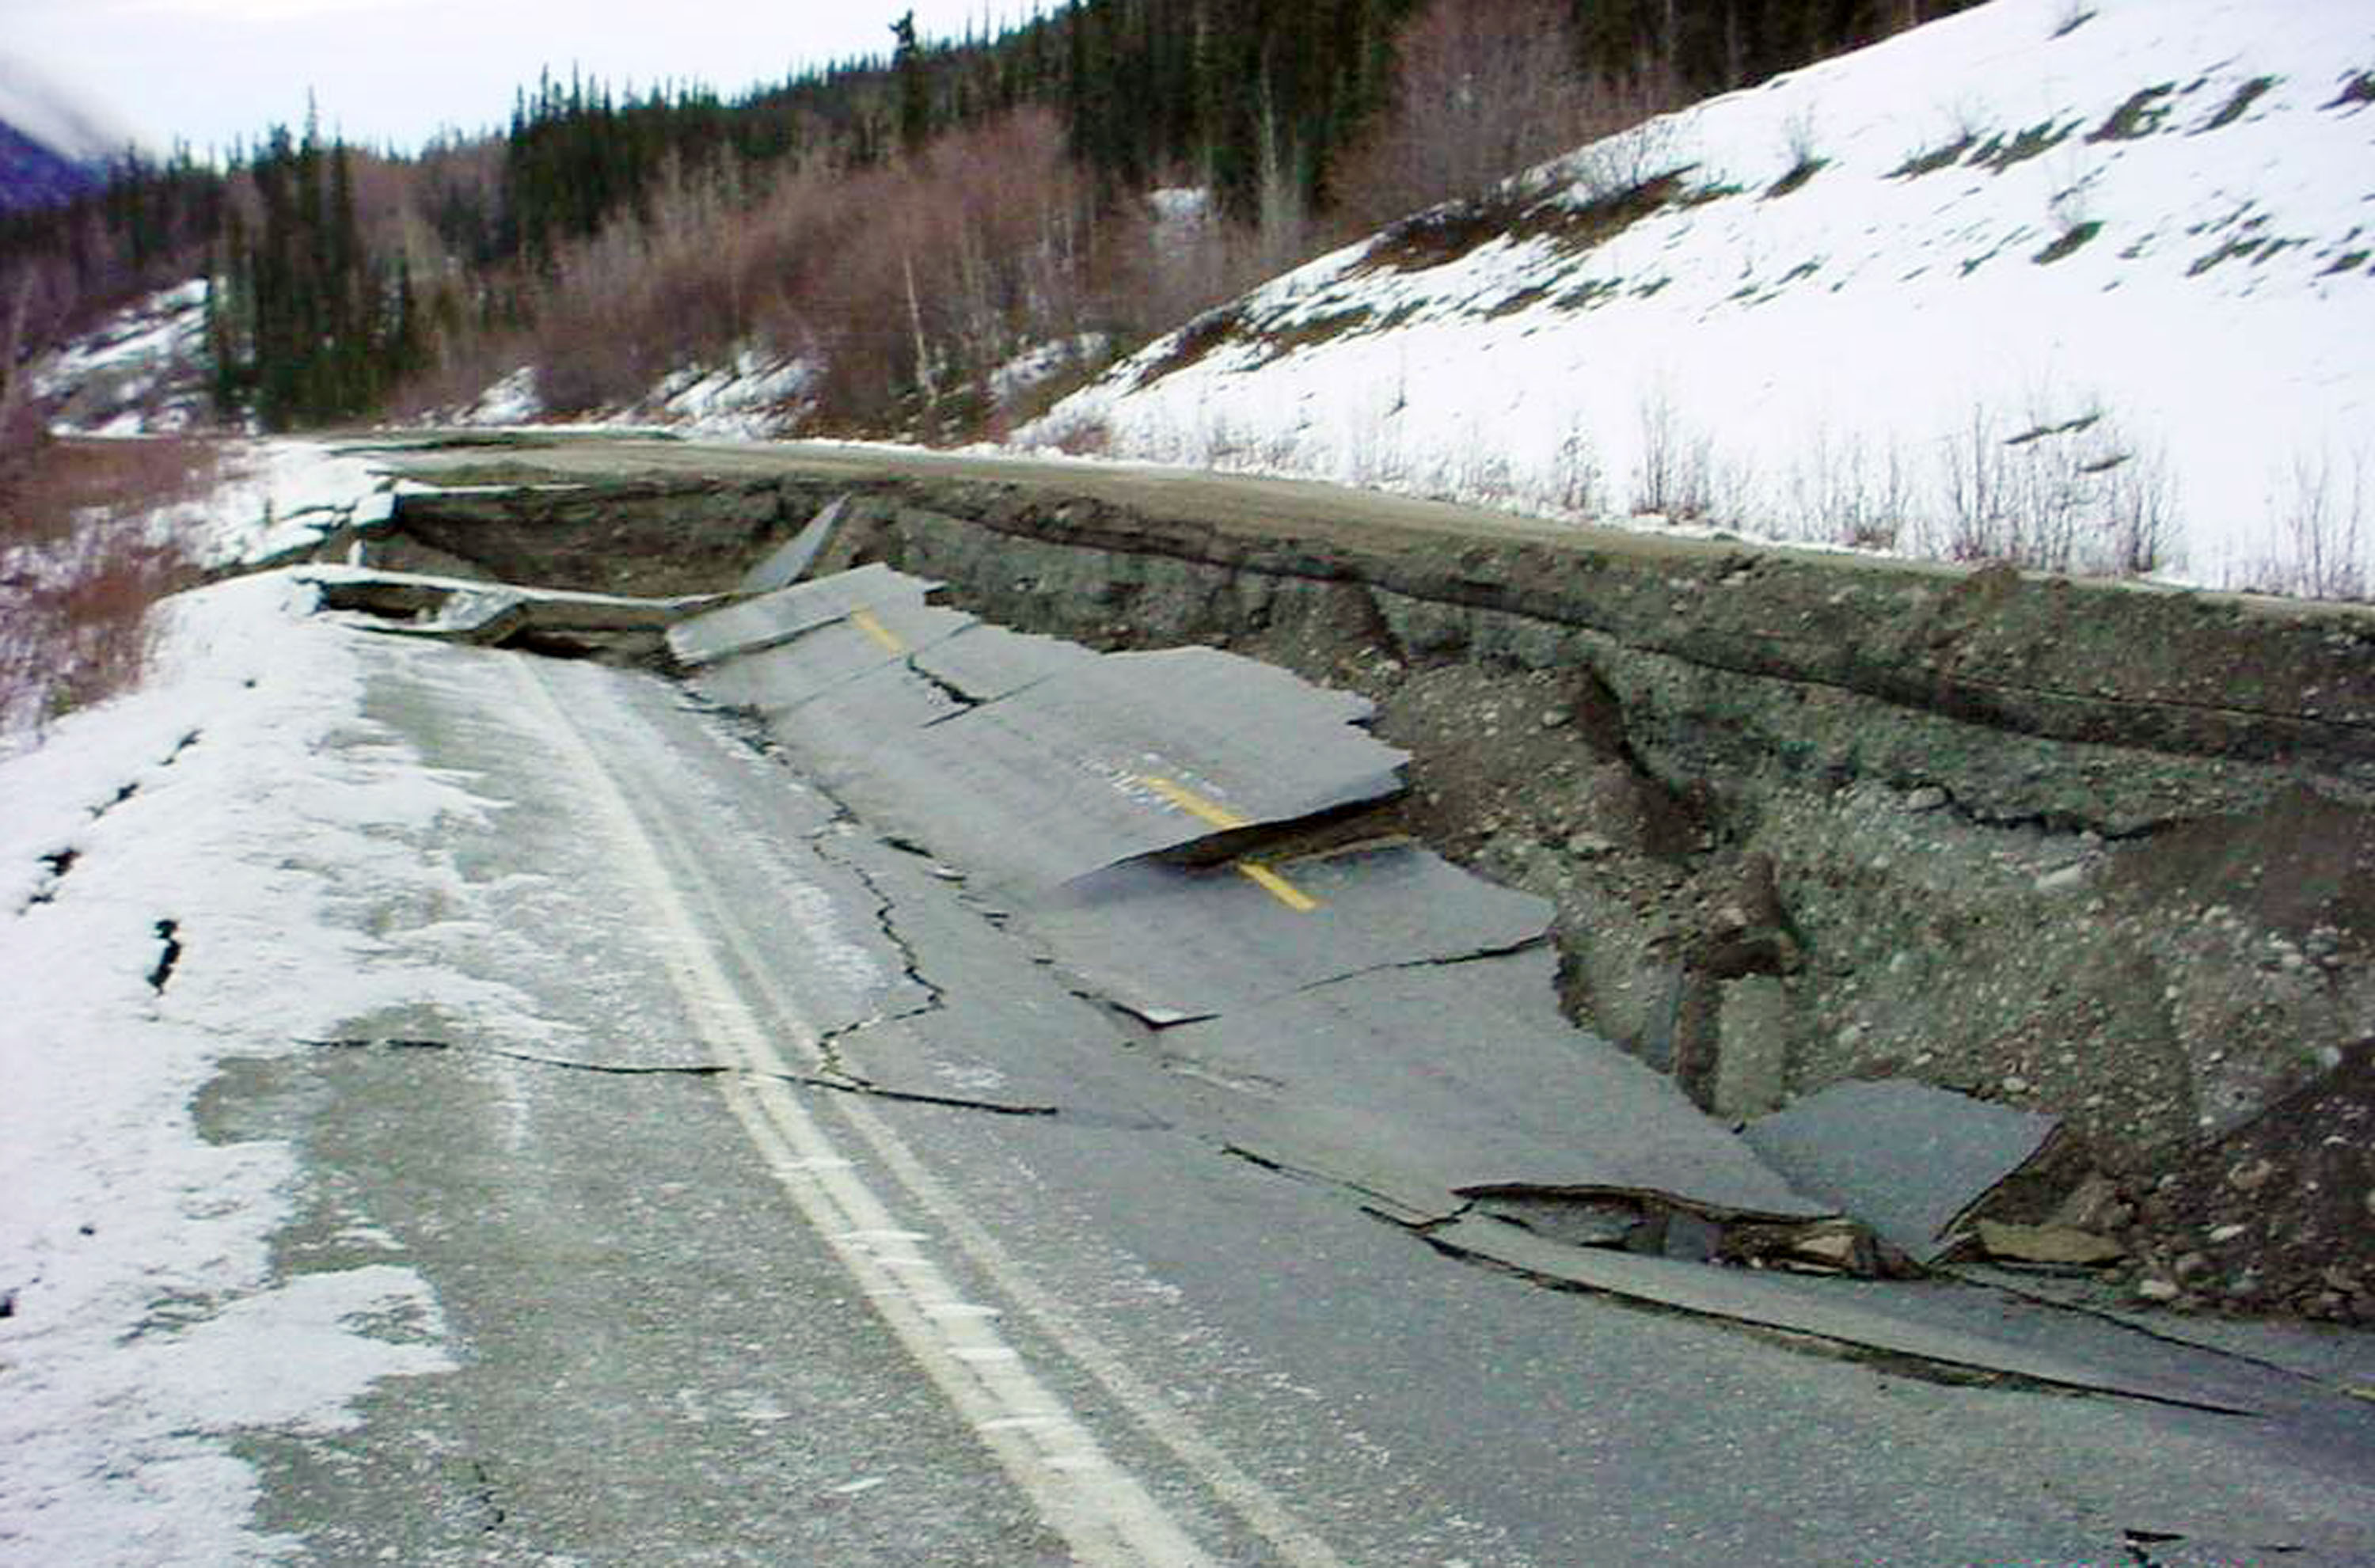 alaska earthquake Earthquakes recent earthquakes map about earthquakes in alaska earthquake list for low bandwidth users information releases notable earthquakes seismicity reports monthly report po box 757320, fairbanks, alaska 99775 907-474-7320 uaf-aec@alaskaedu.